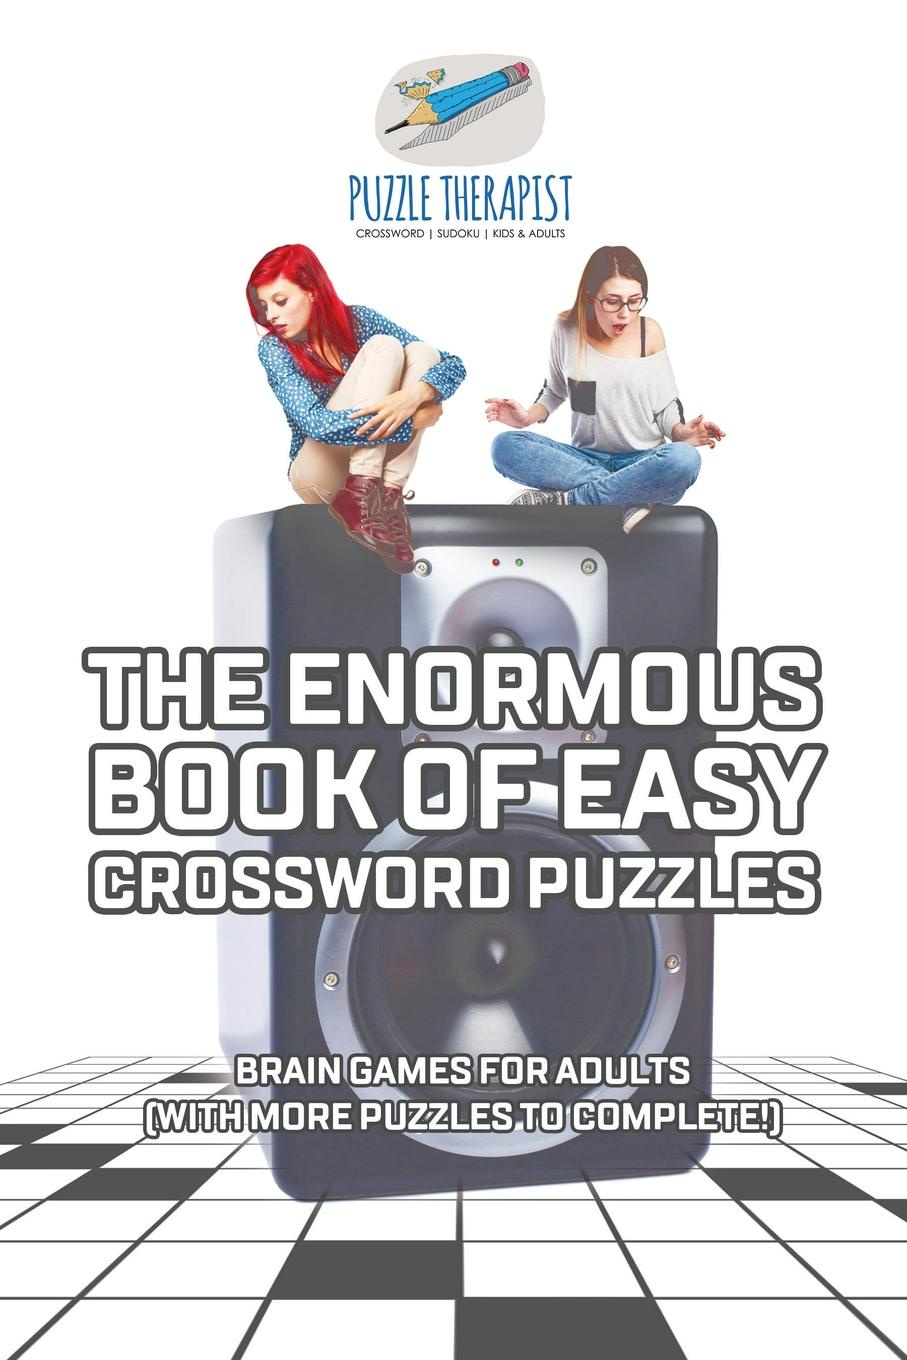 Puzzle Therapist The Enormous Book of Easy Crossword Puzzles . Brain Games for Adults (with more puzzles to complete!) the canterbury puzzles